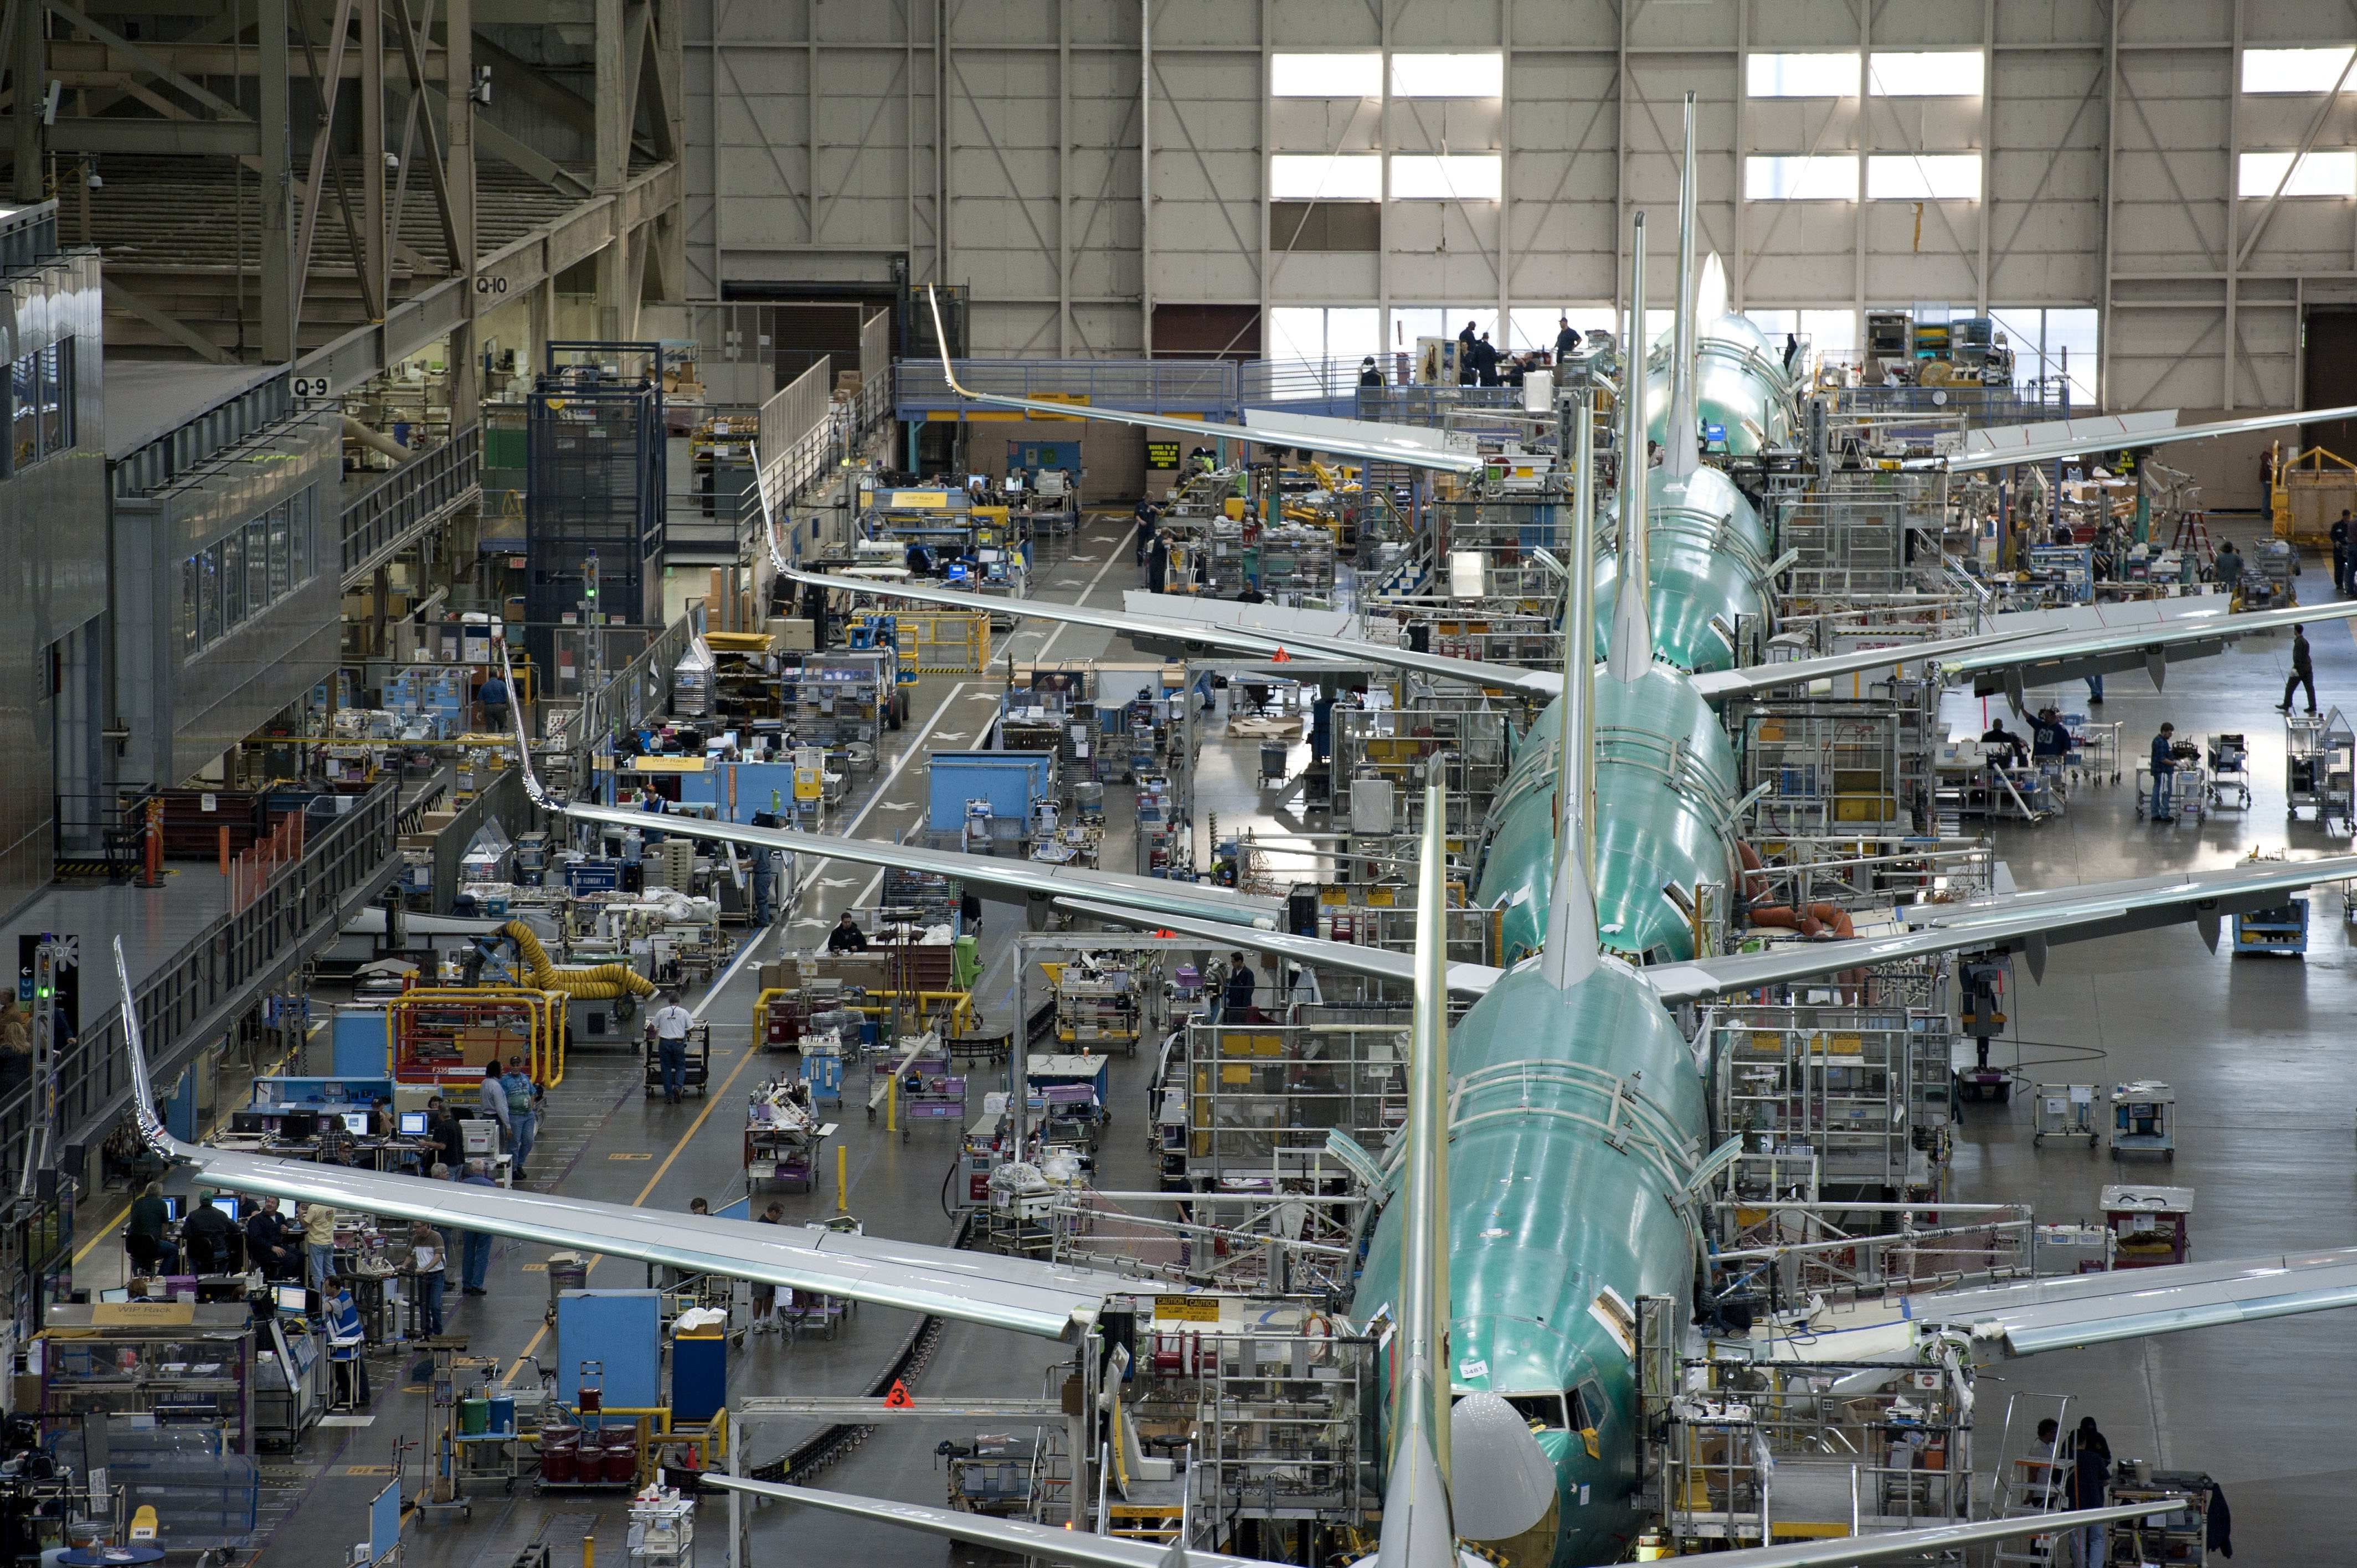 All Boeing 737 final assembly now takes place in Renton Washington